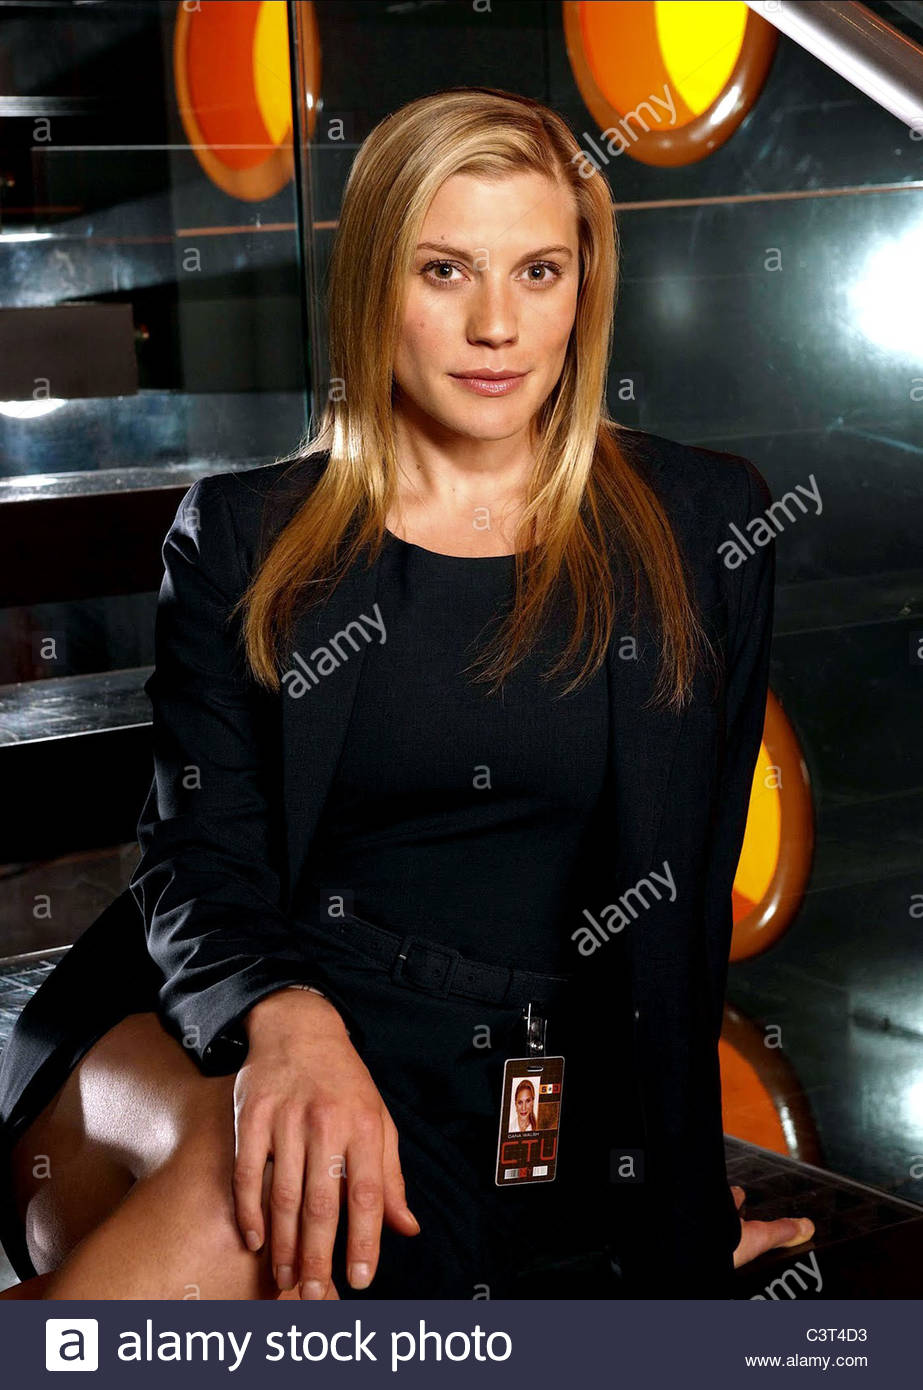 KATEE SACKHOFF 24 : SEASON 8 (2010 Stock Photo: 36795055 - Alamy